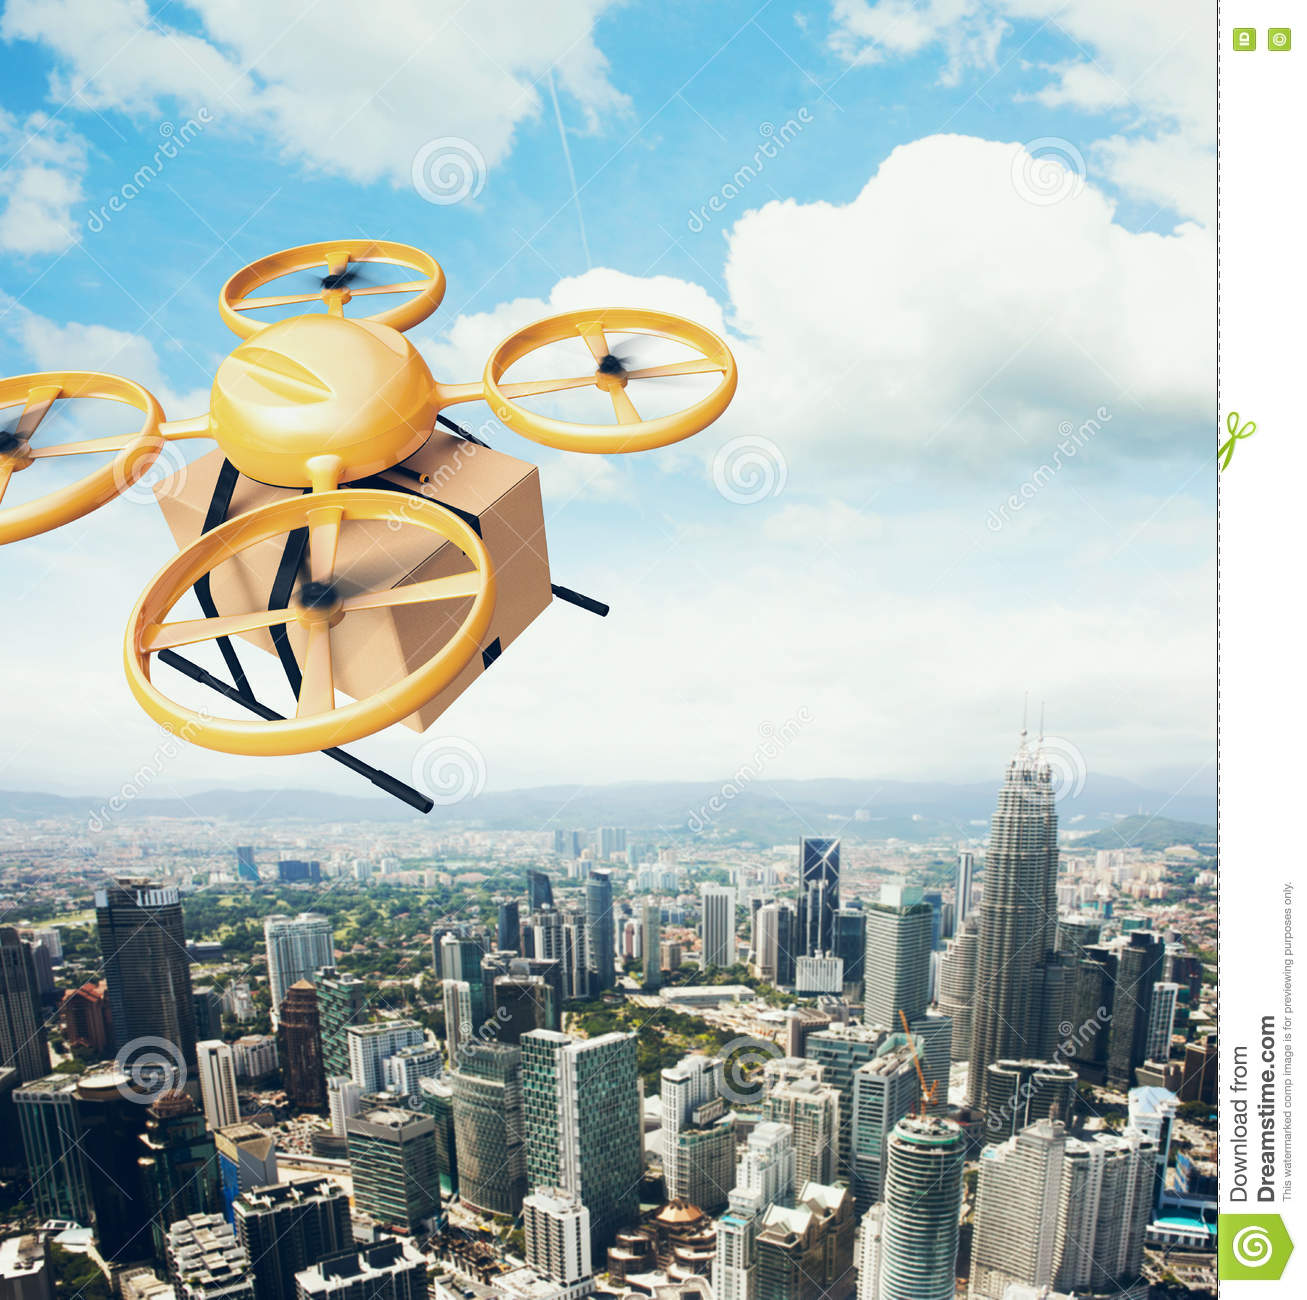 Photo Yellow Generic Design Remote Control Air Drone Flying Sky Empty Craft Box Under Urban Surface.Modern City